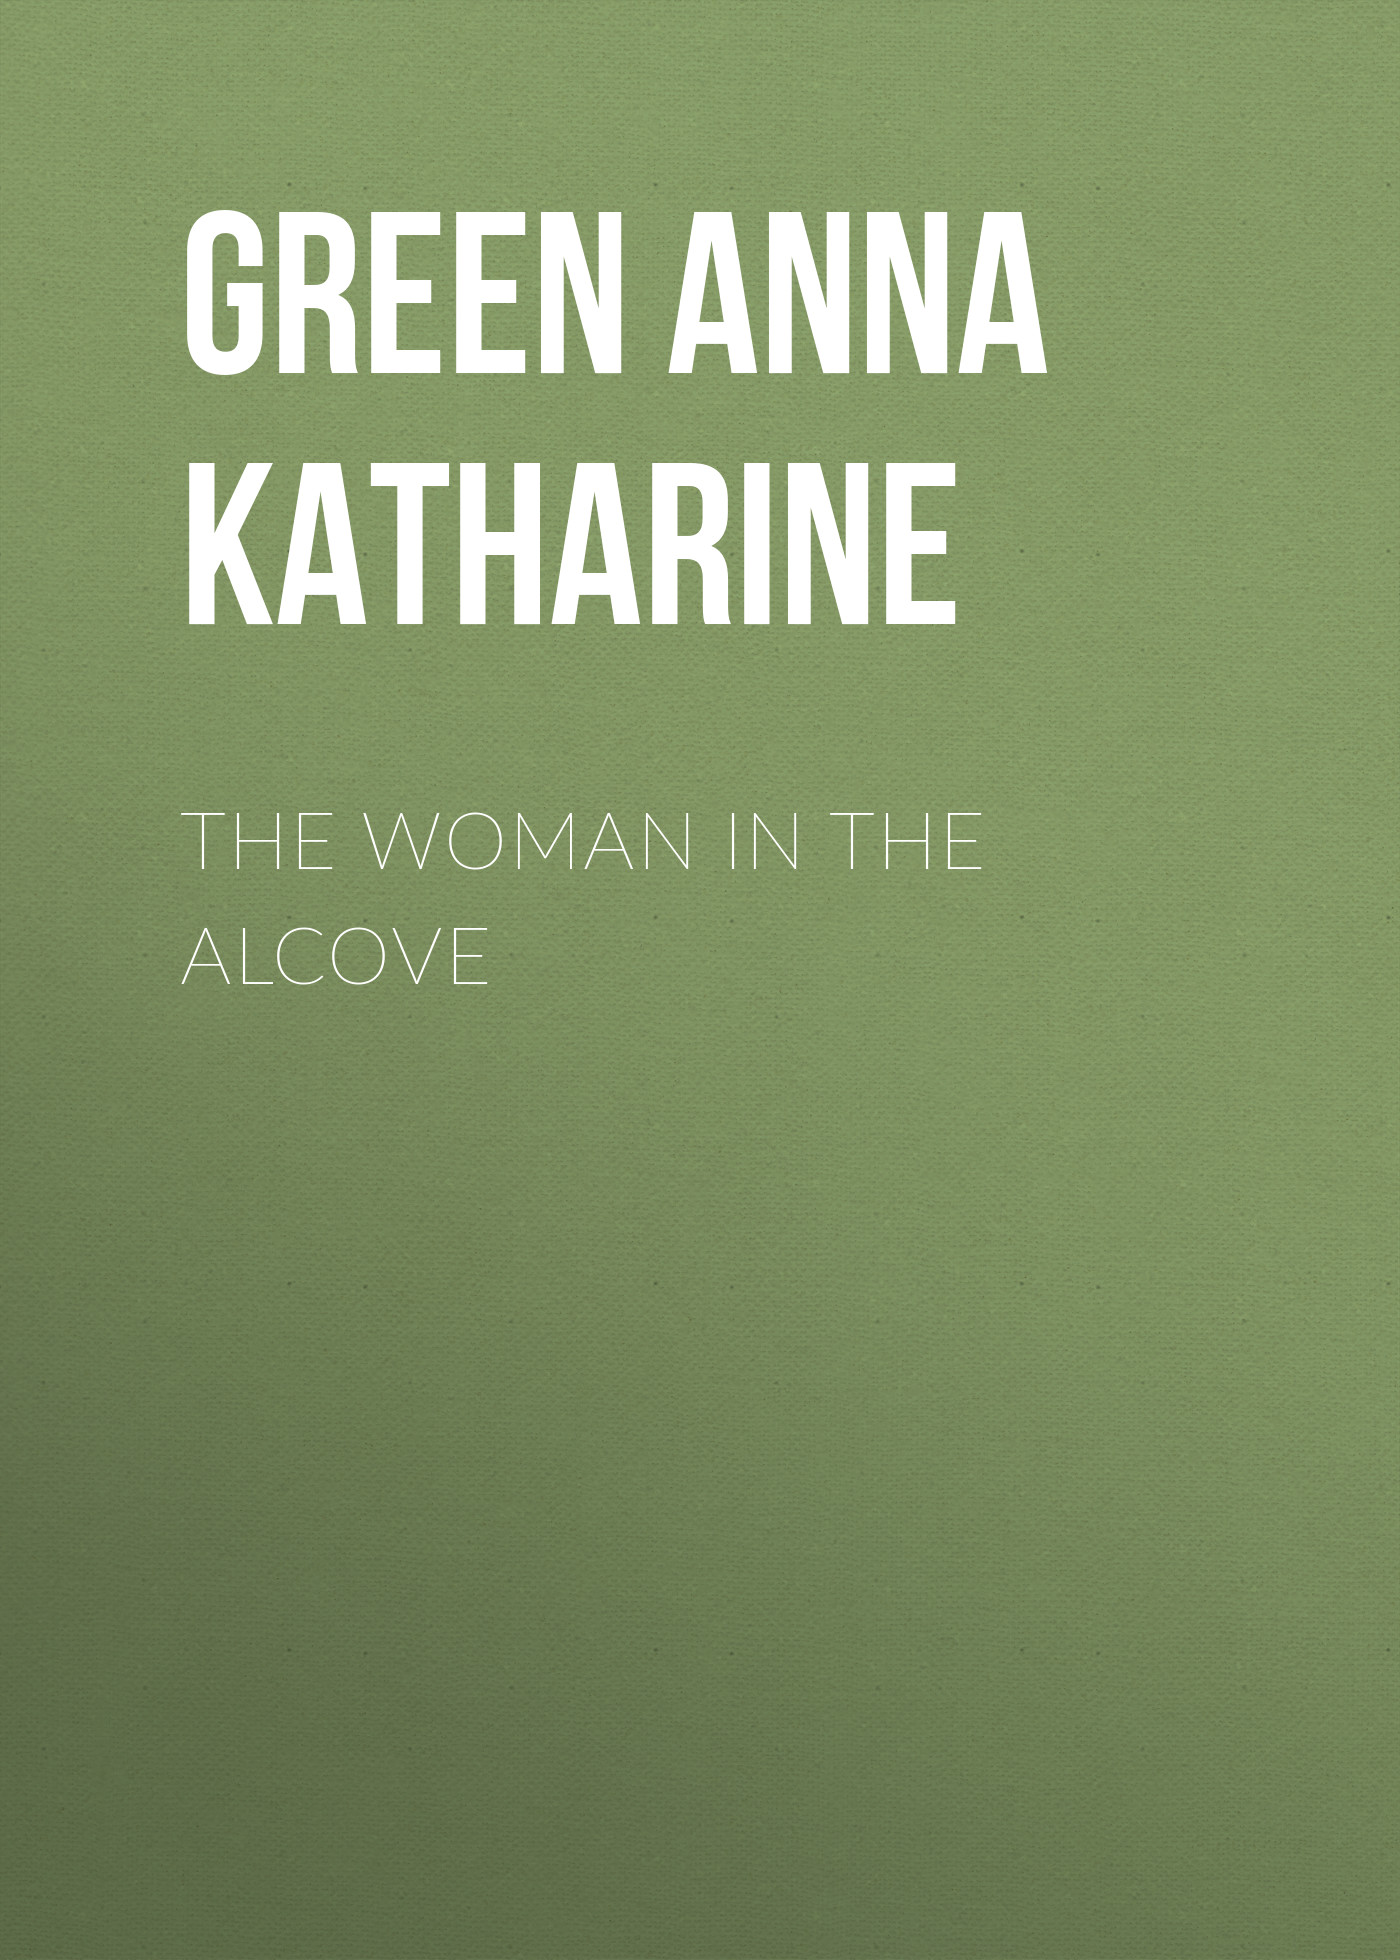 Green Anna Katharine The Woman in the Alcove